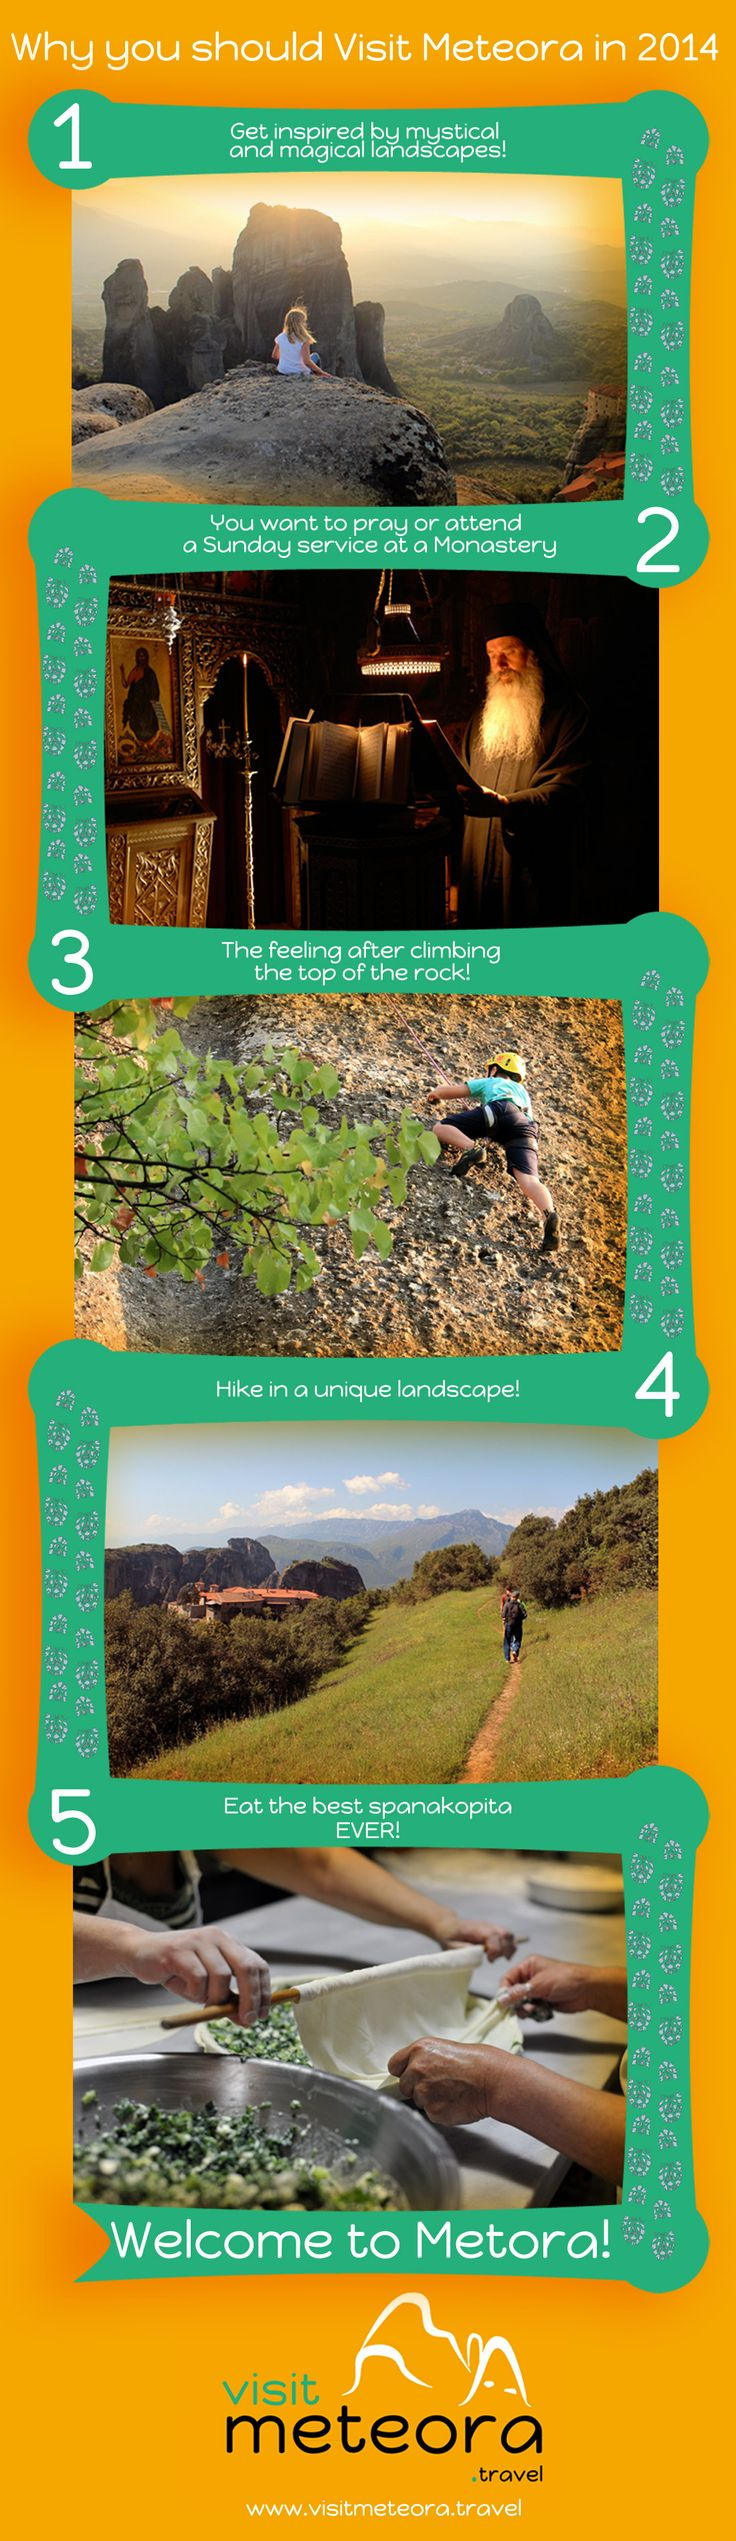 5 reasons why you should Visit #Meteora in 2014!